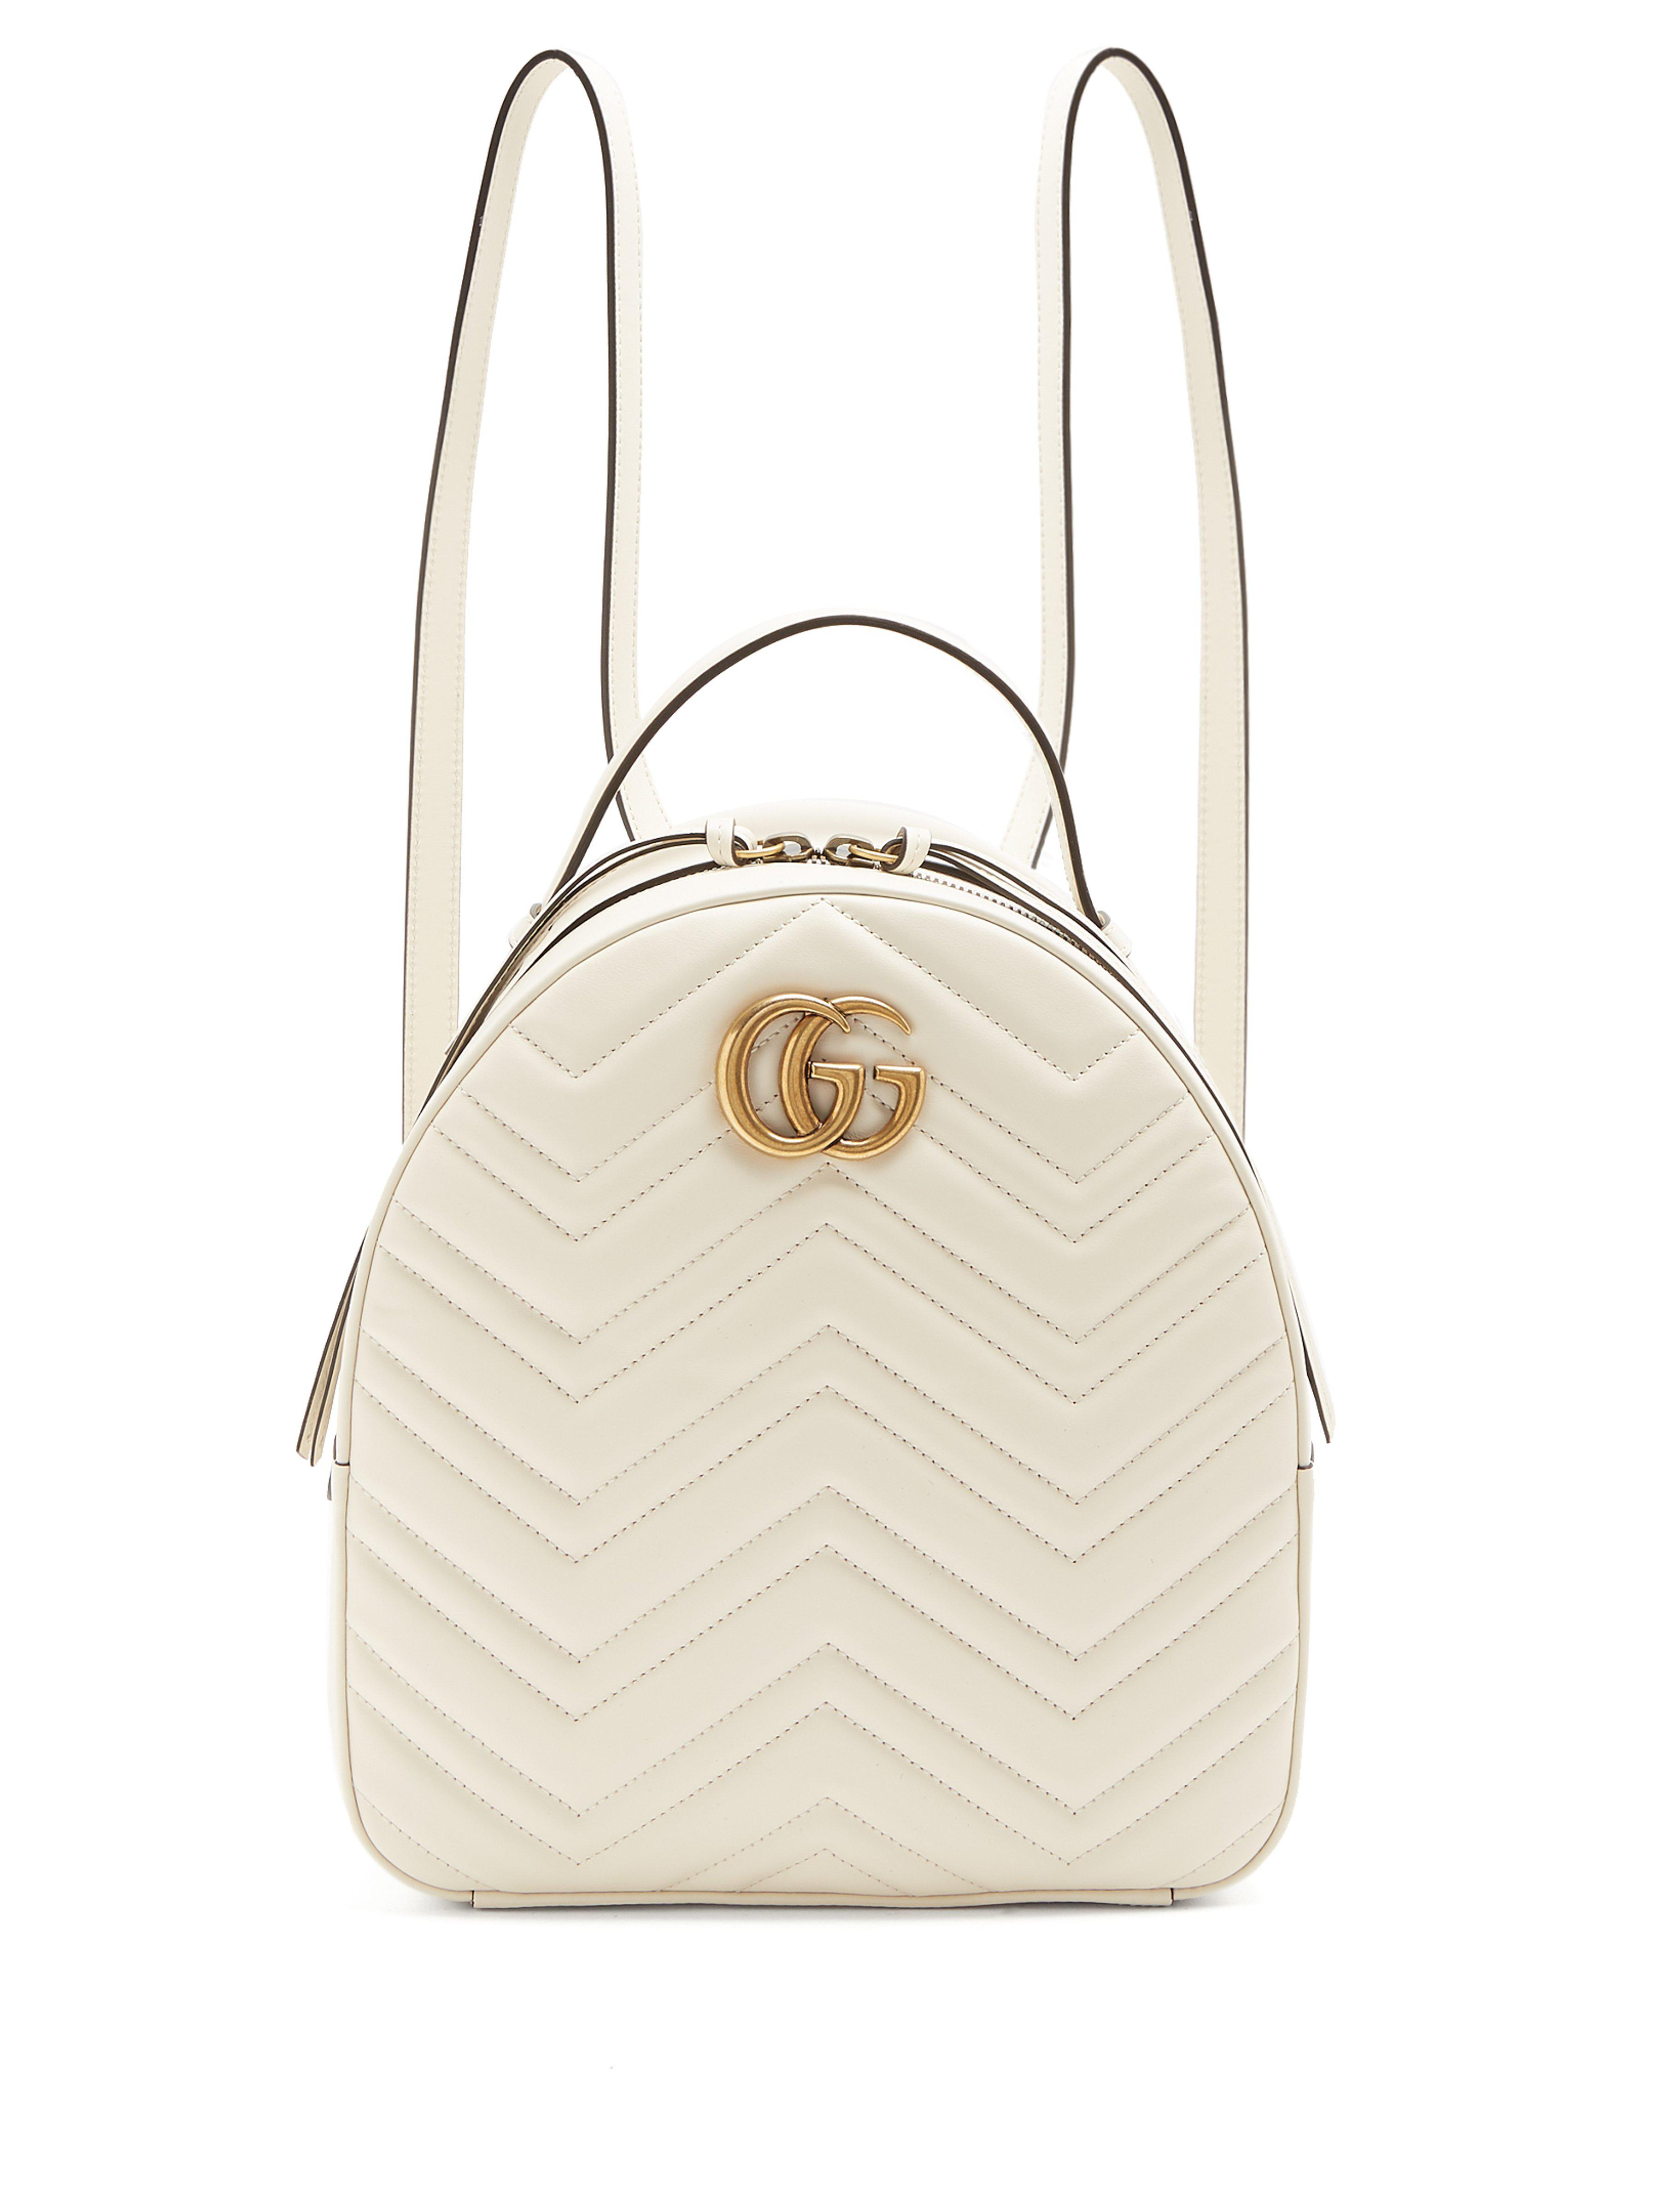 3c44103c6a4 Gucci GG Marmont Quilted-leather Backpack in White - Lyst